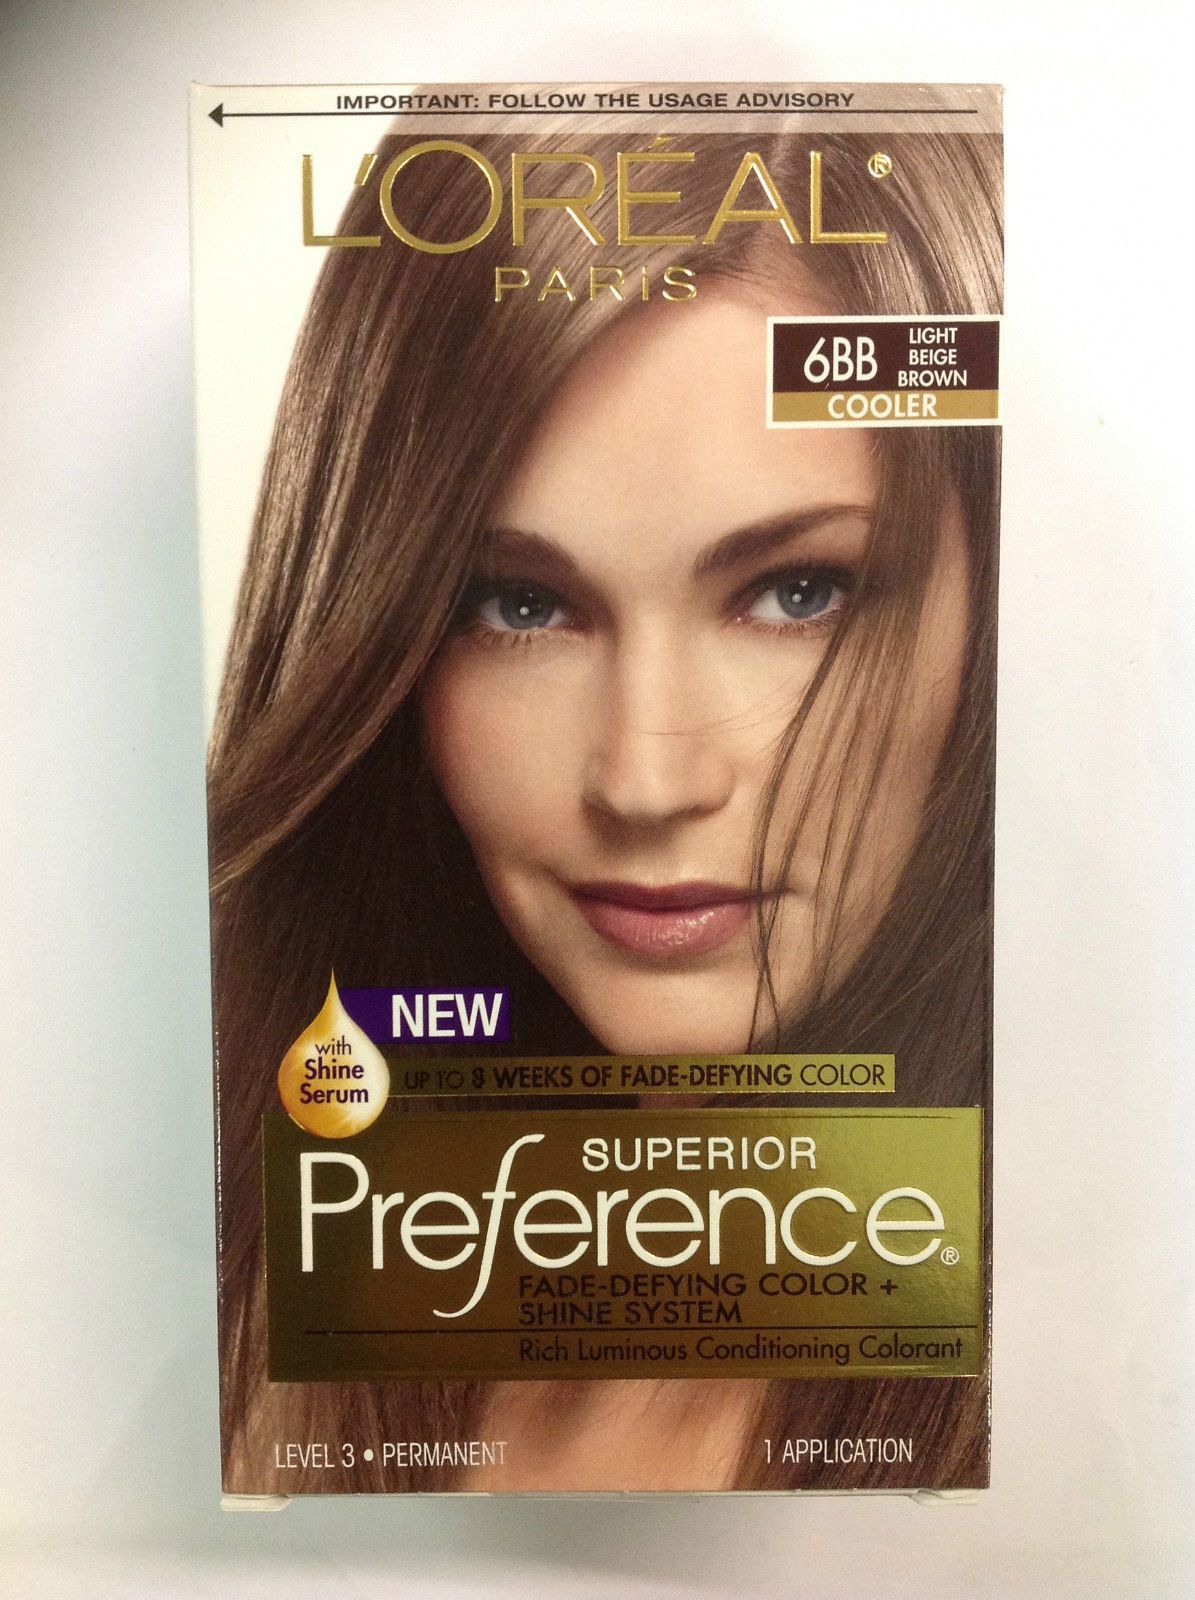 L Oreal Paris Superior Preference 6bb Light Beige Brown Hair Color Light Brown Brown Hair With Caramel Highlights Light Box Hair Dye